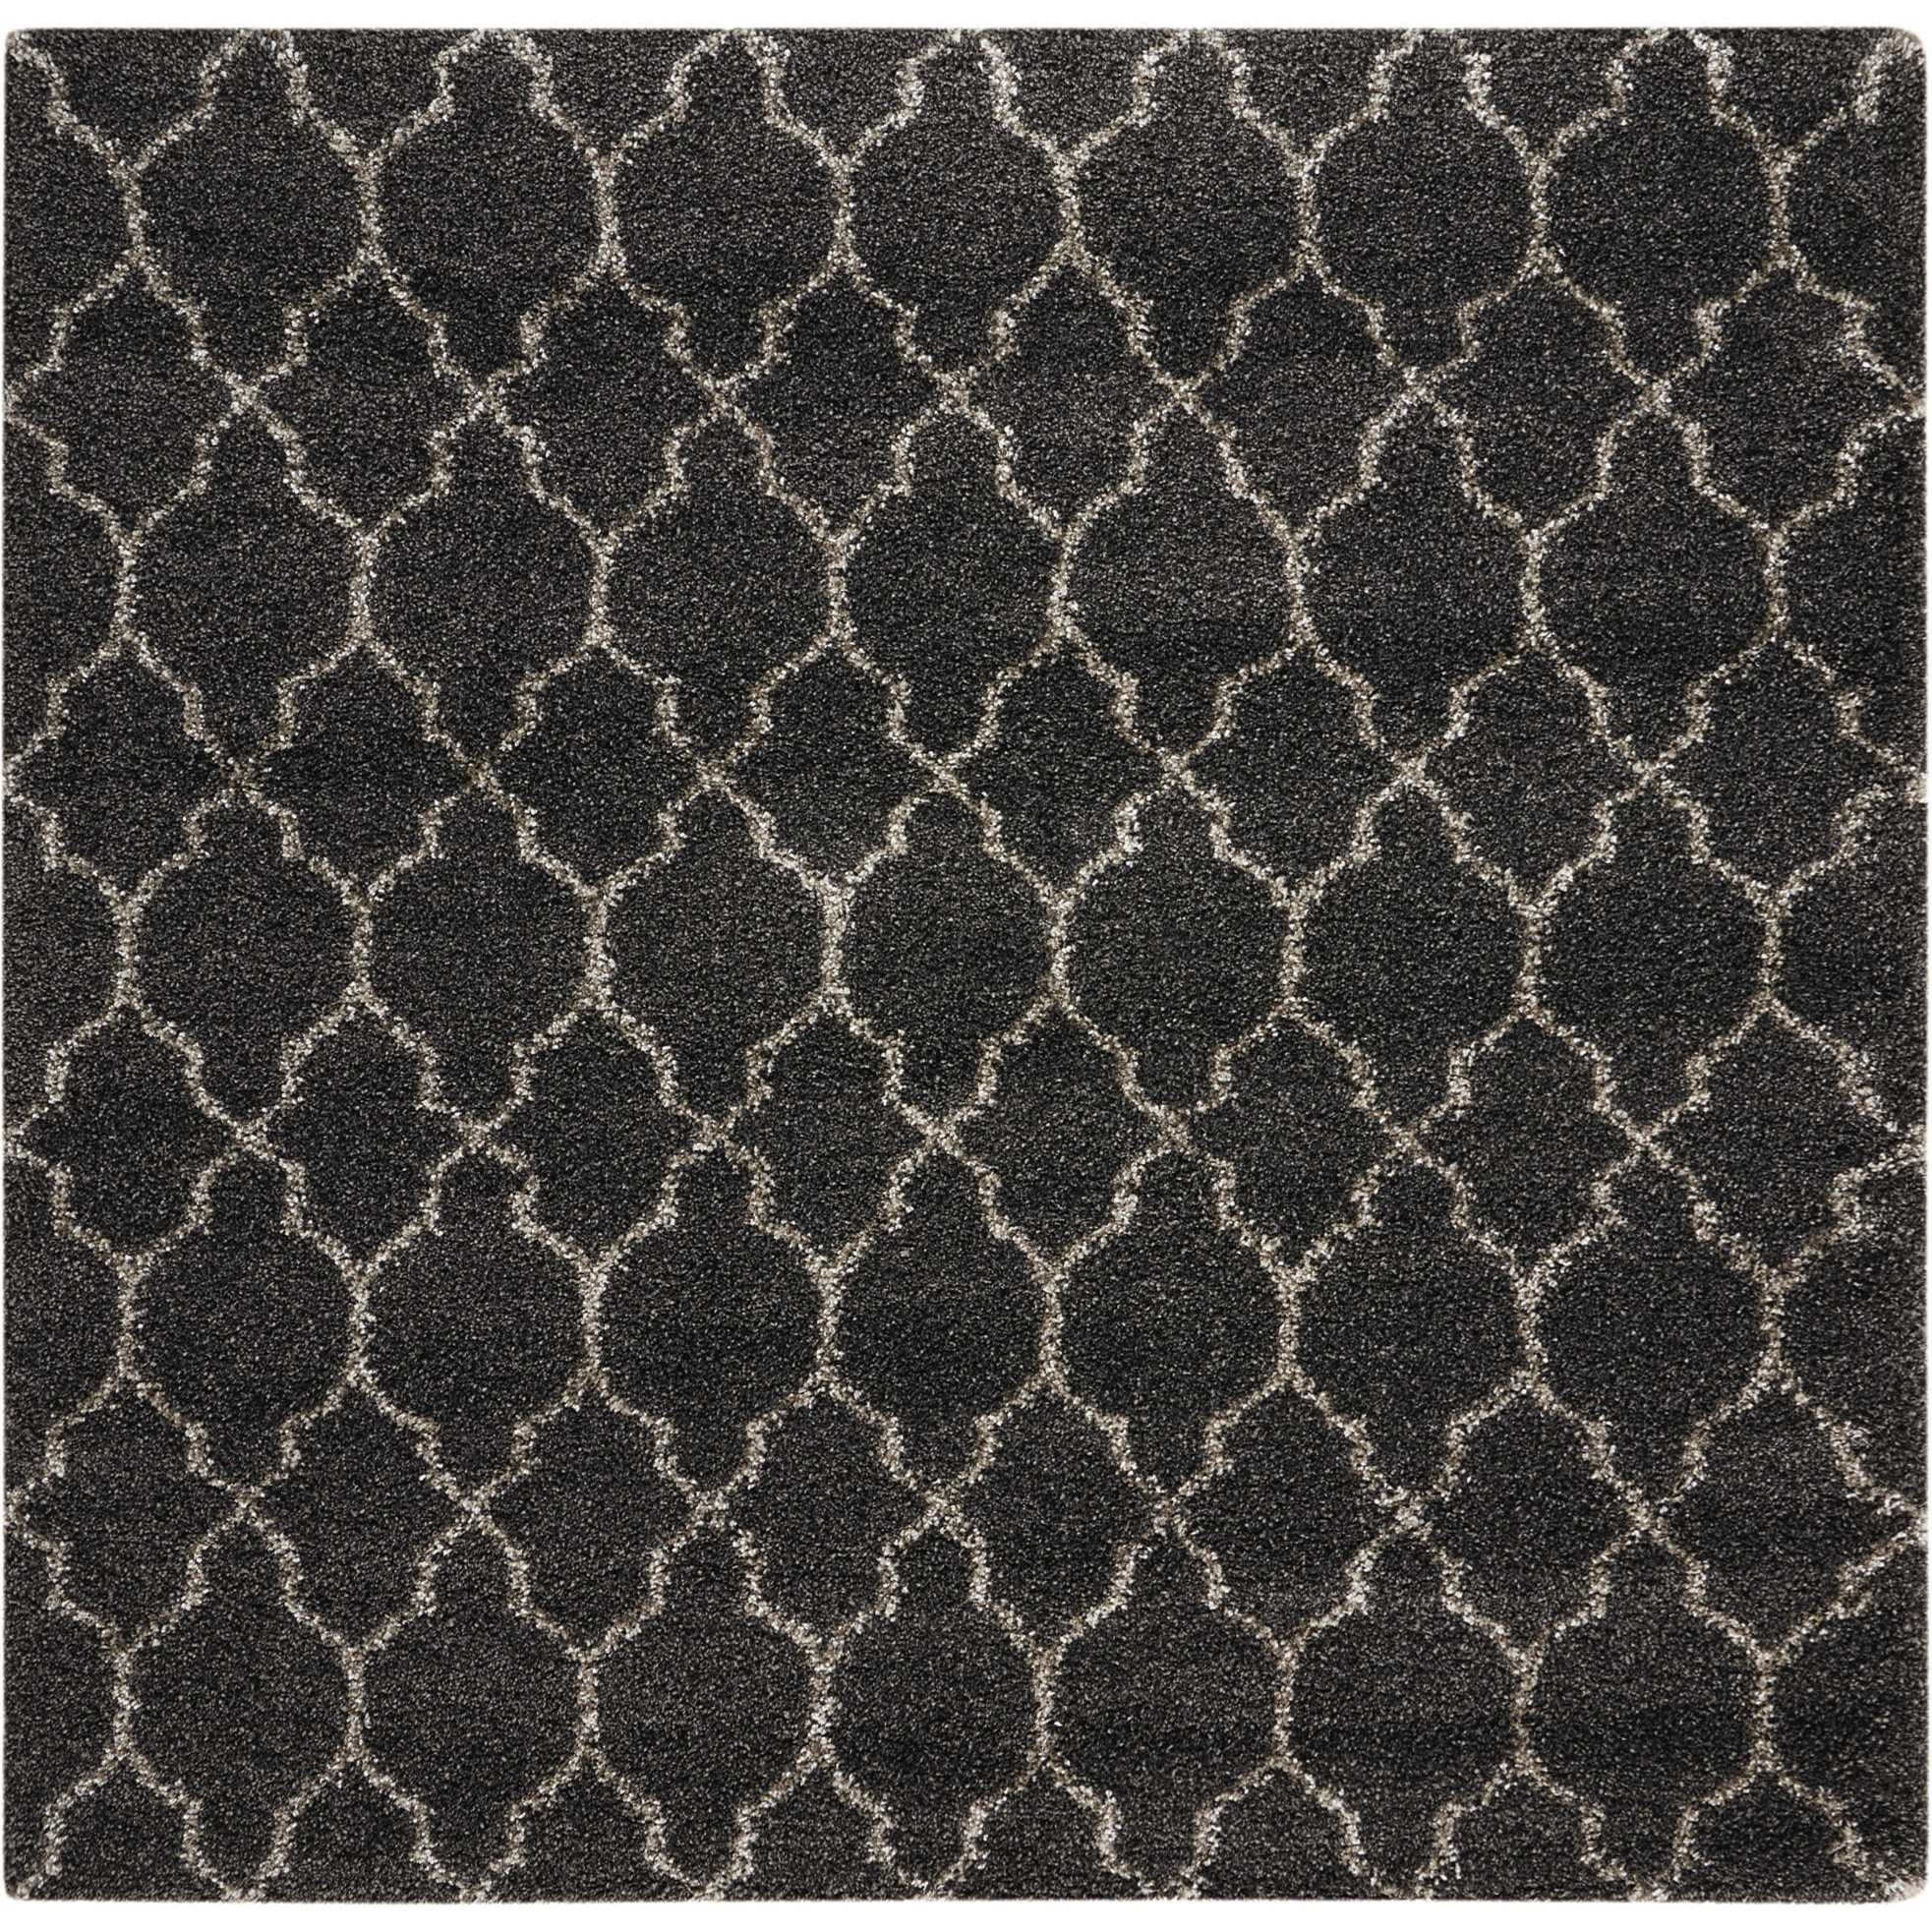 Amore Amore AMOR2 Black 7' Square   Rug by Nourison at Home Collections Furniture